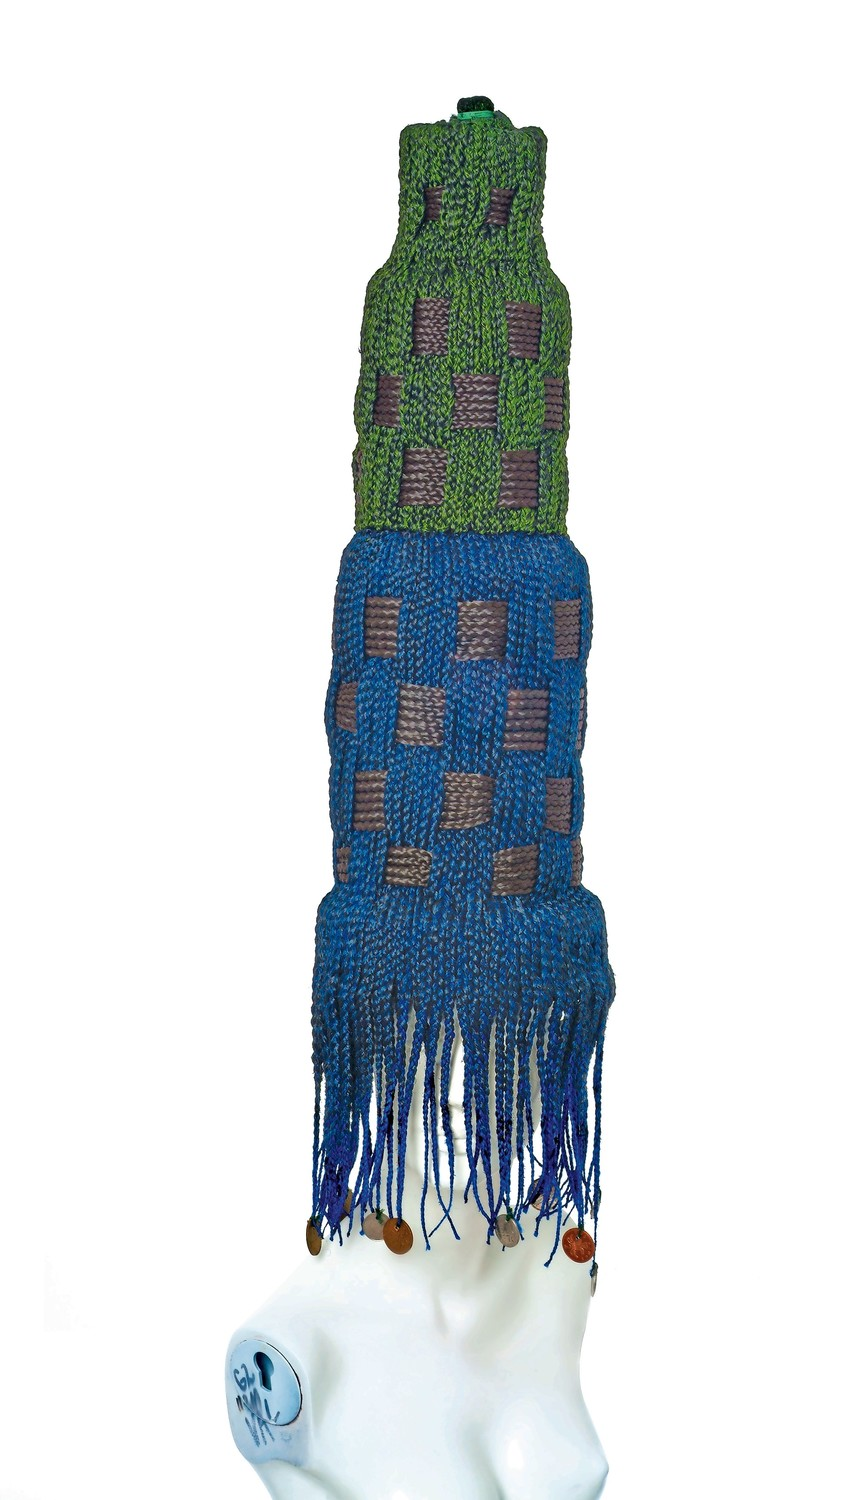 Meschac Gaba's 2004 mixed-media work 'Lipstick Building' is part of the exhibition 'Their Own Harlems' at The Studio Museum in Harlem. One of the elements of this piece includes braided artificial hair.